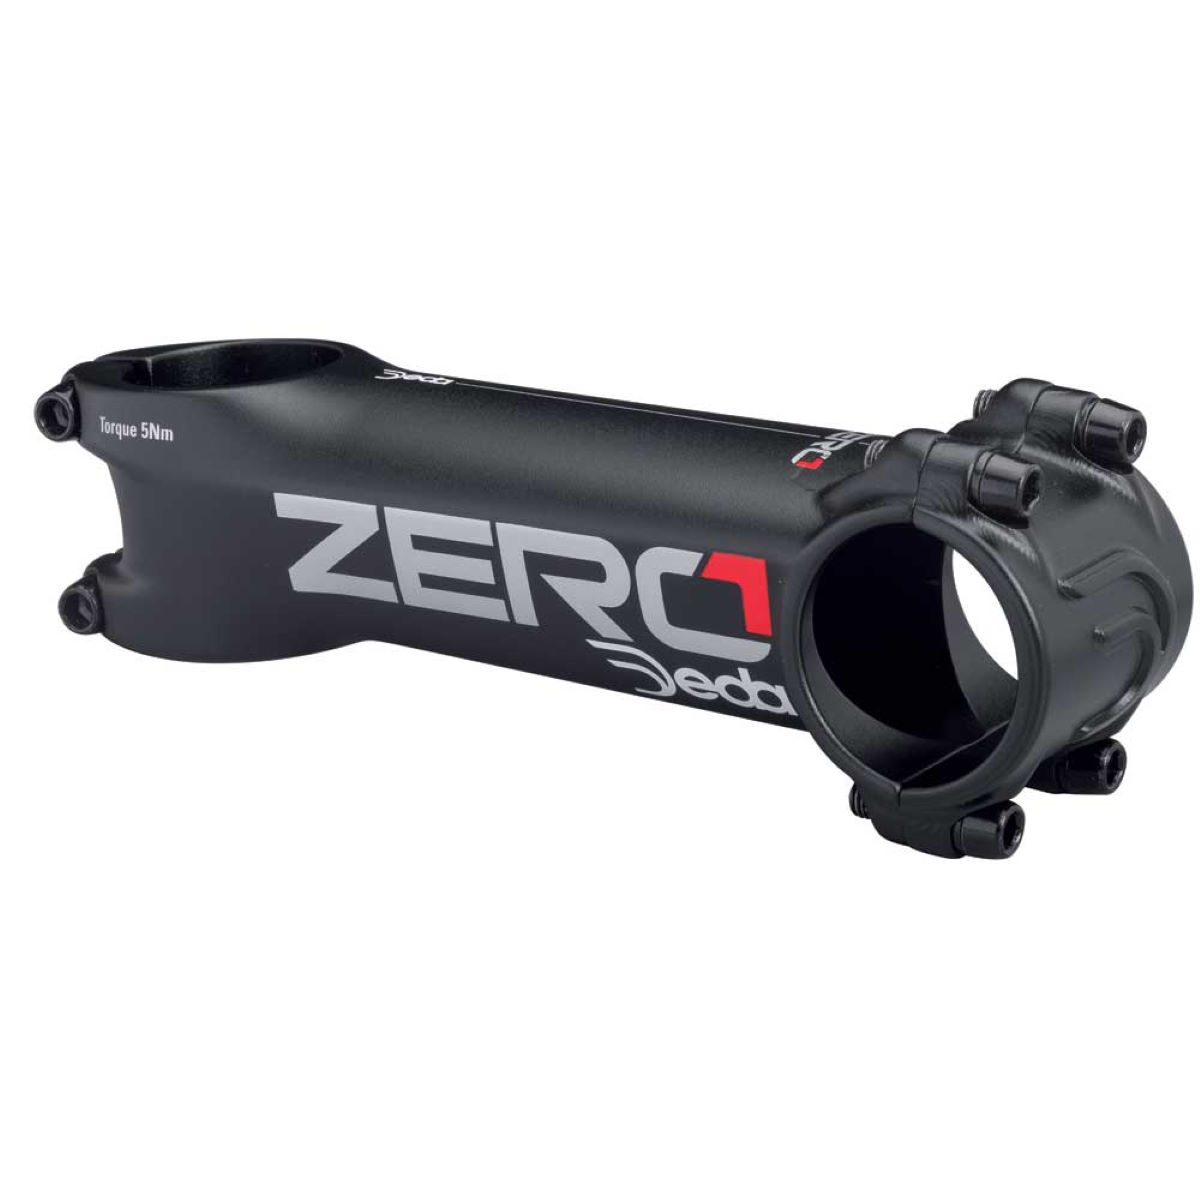 Deda Zero1  Stem - 120mm 7 degrees Black on Black | Stems